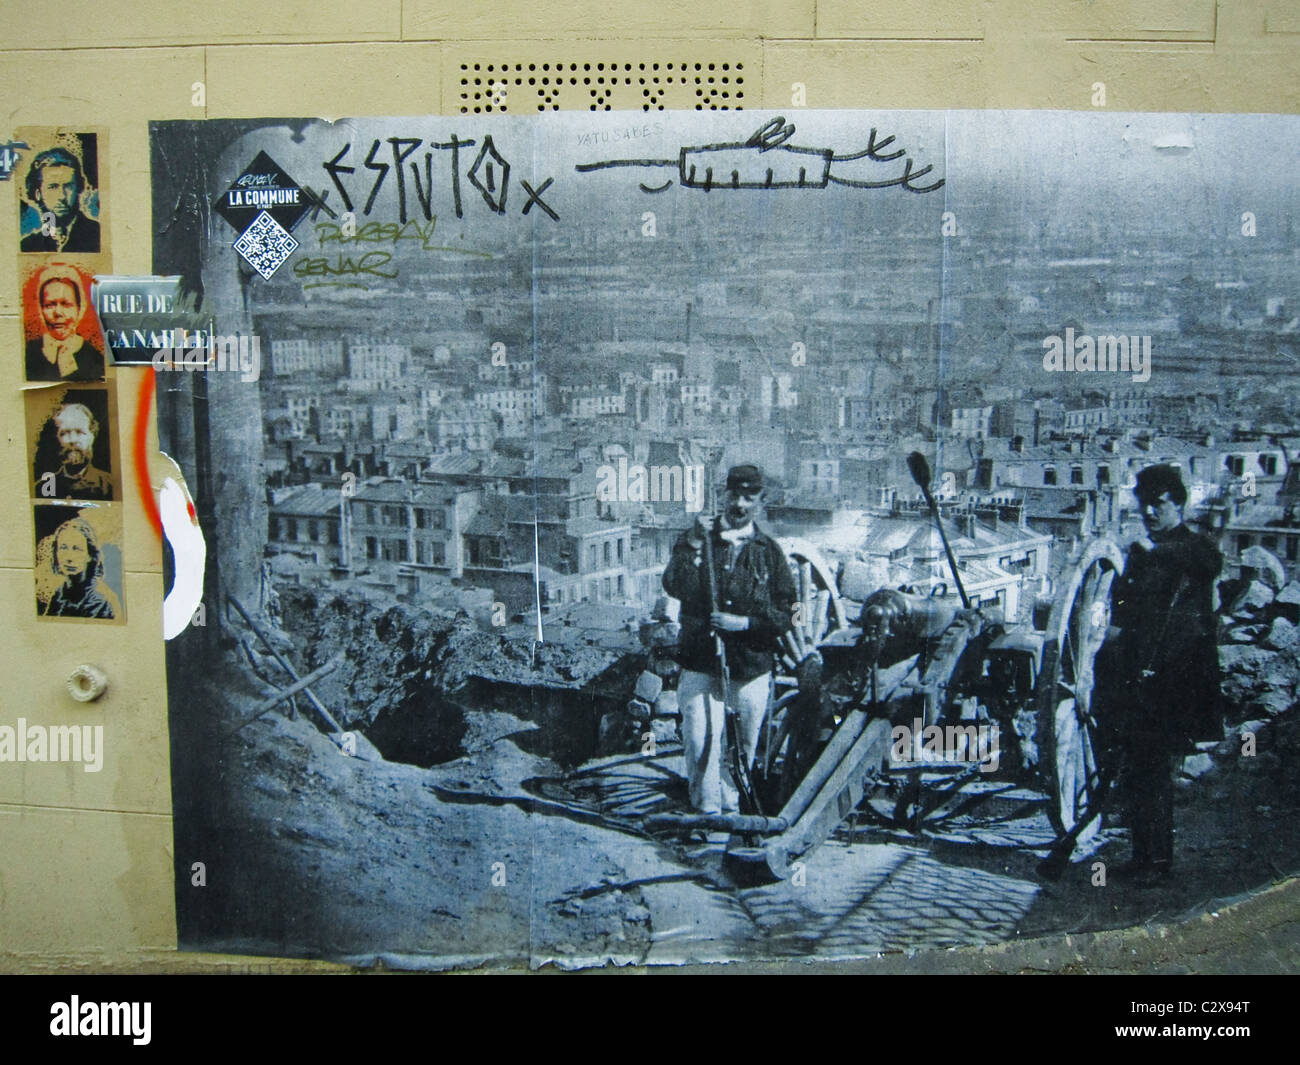 Paris, France, Photo Wall Art in Montmartre District, Showing the 'Paris Commune', History of the Area, - Stock Image